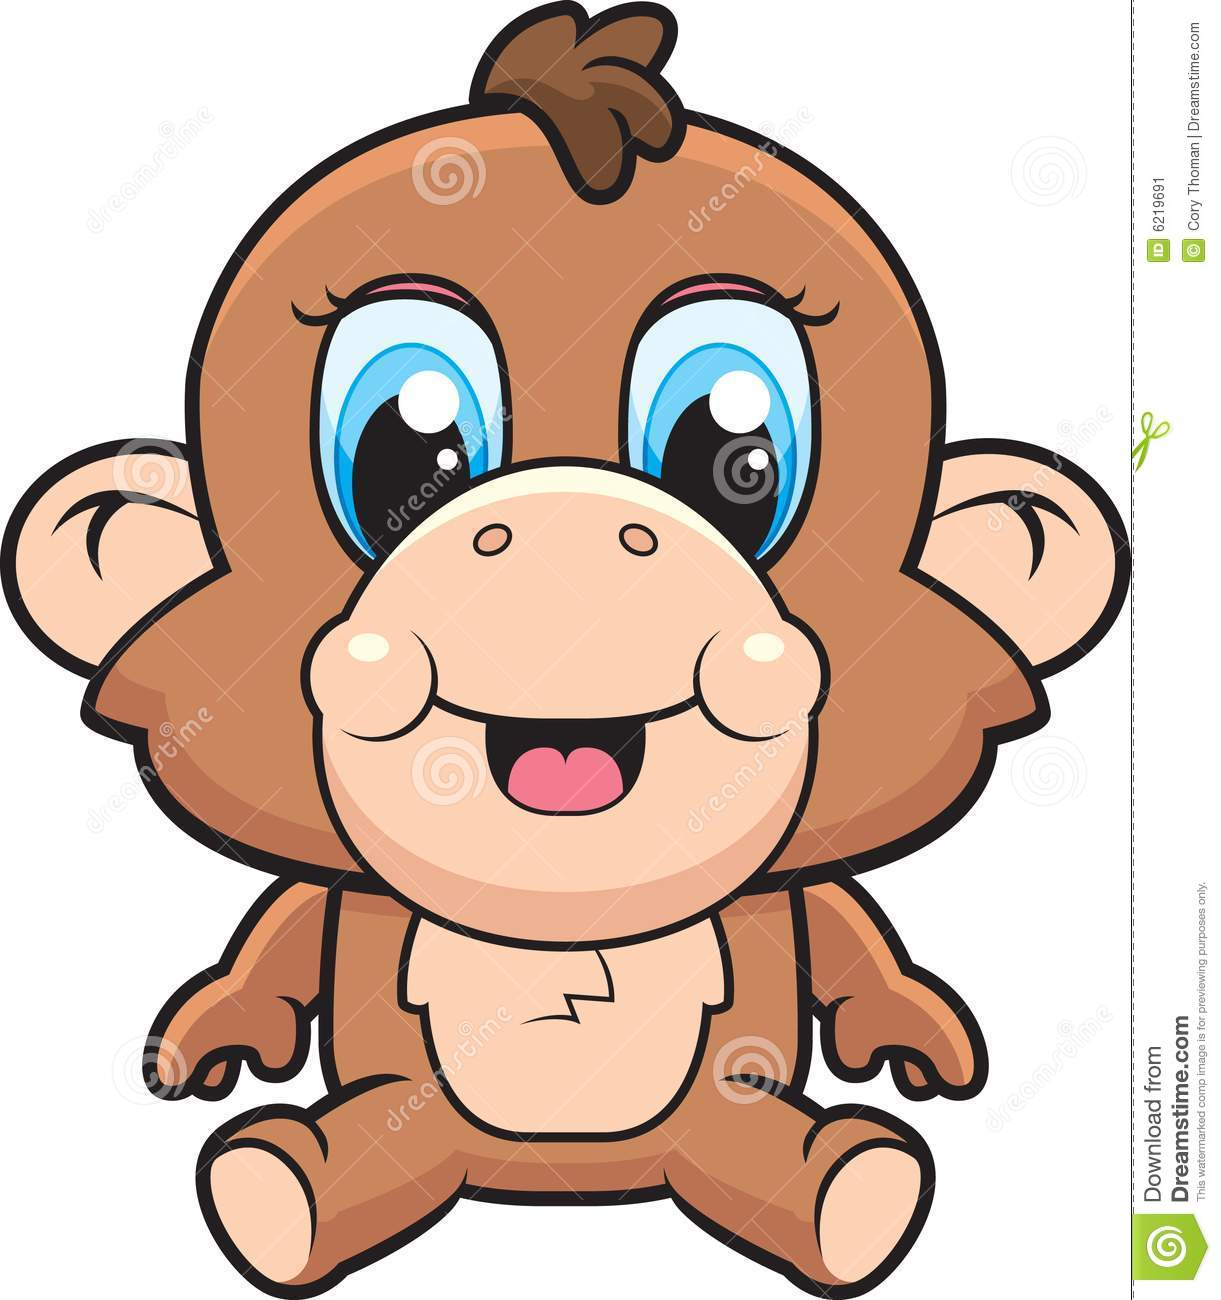 cute cartoon monkey images free download best cute cartoon monkey